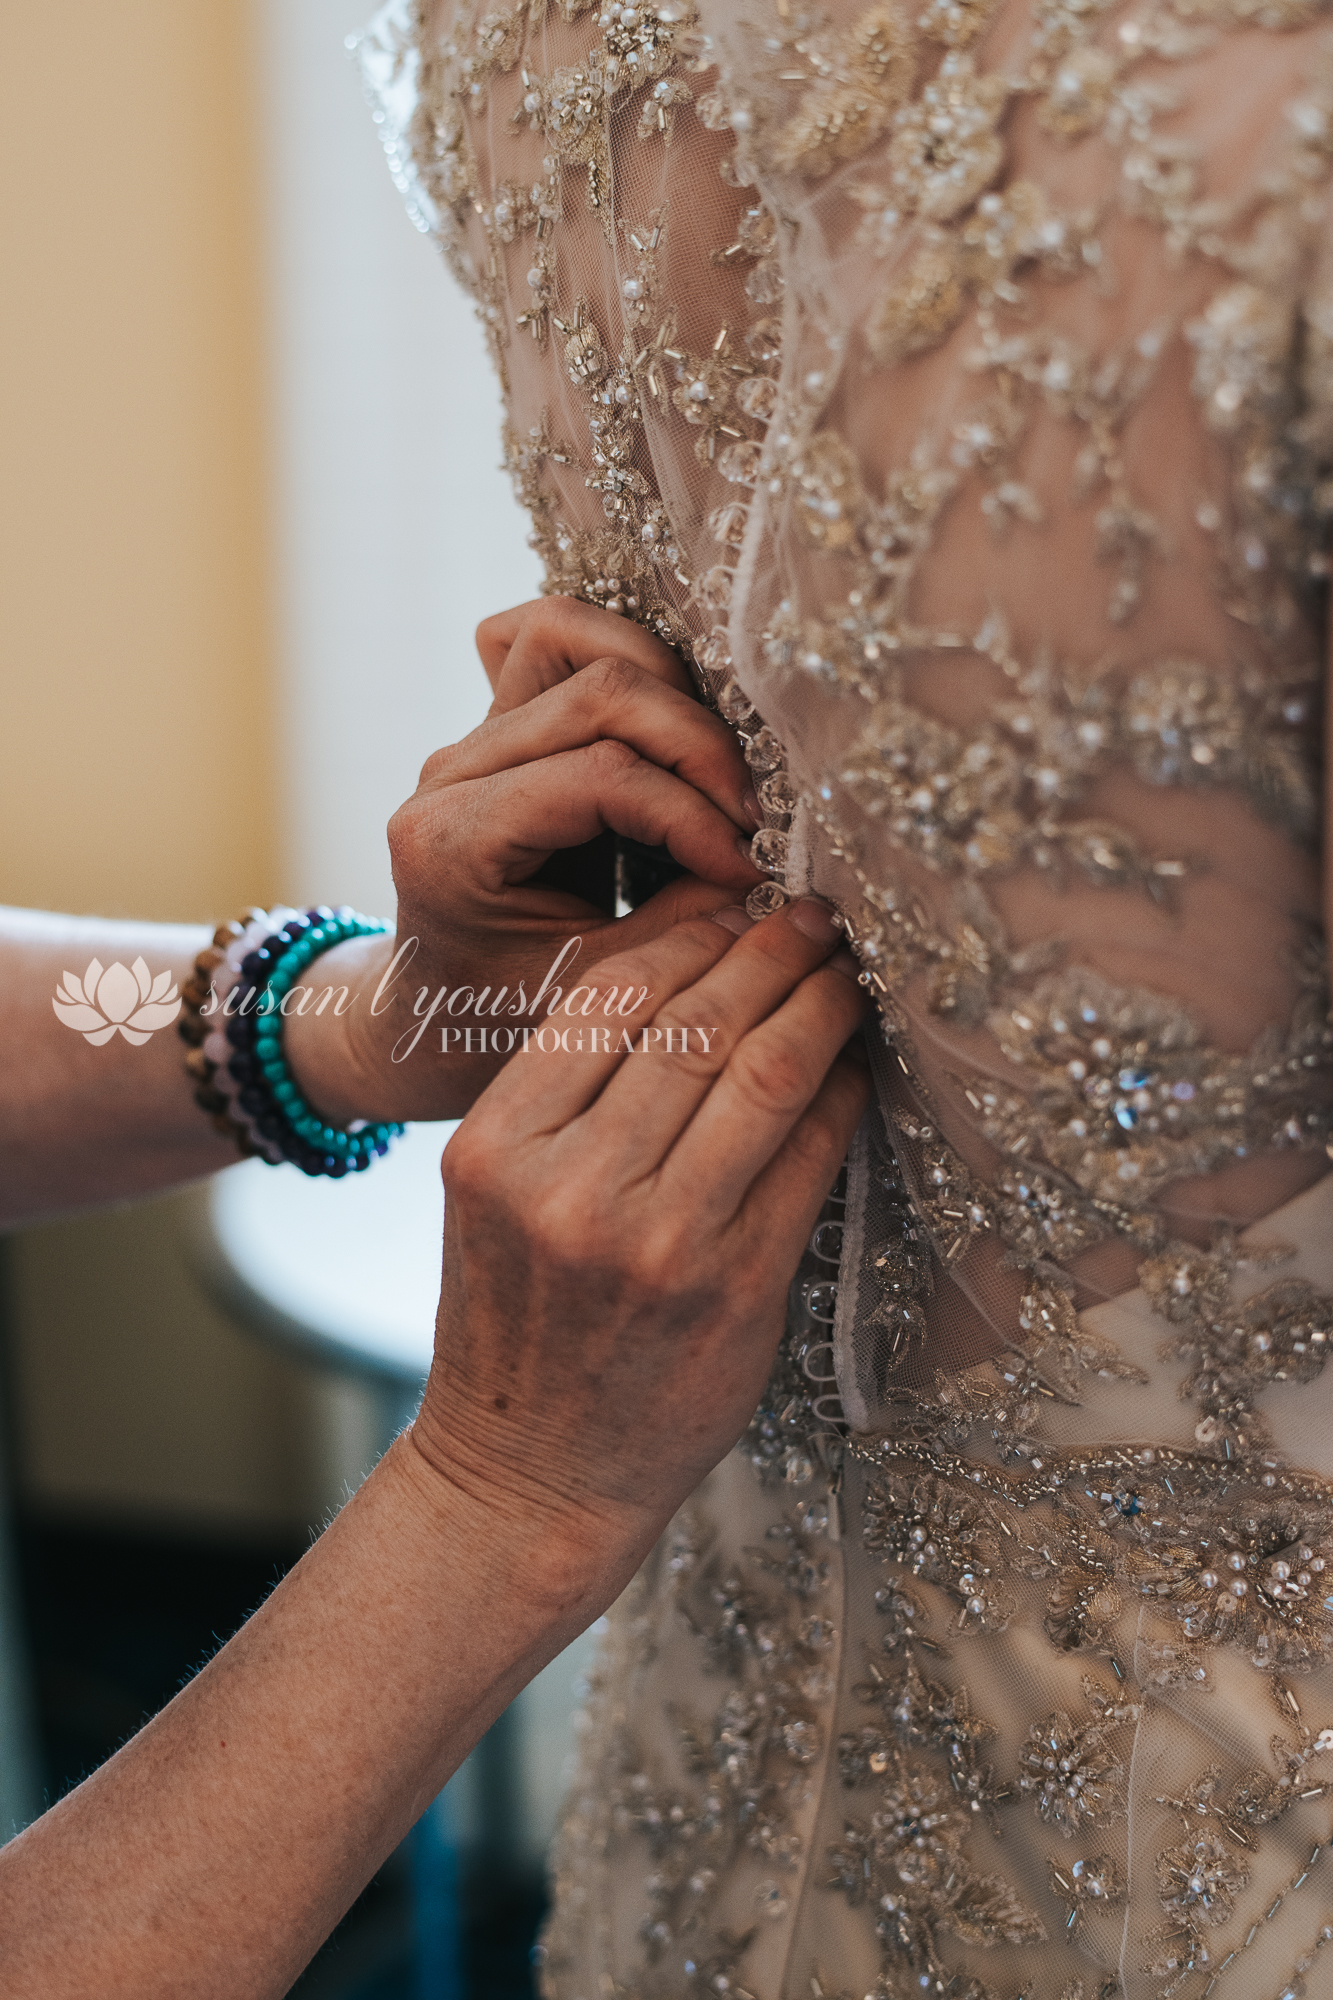 Chynna and John Wedding 05-18-2019 SLY Photography-21.jpg